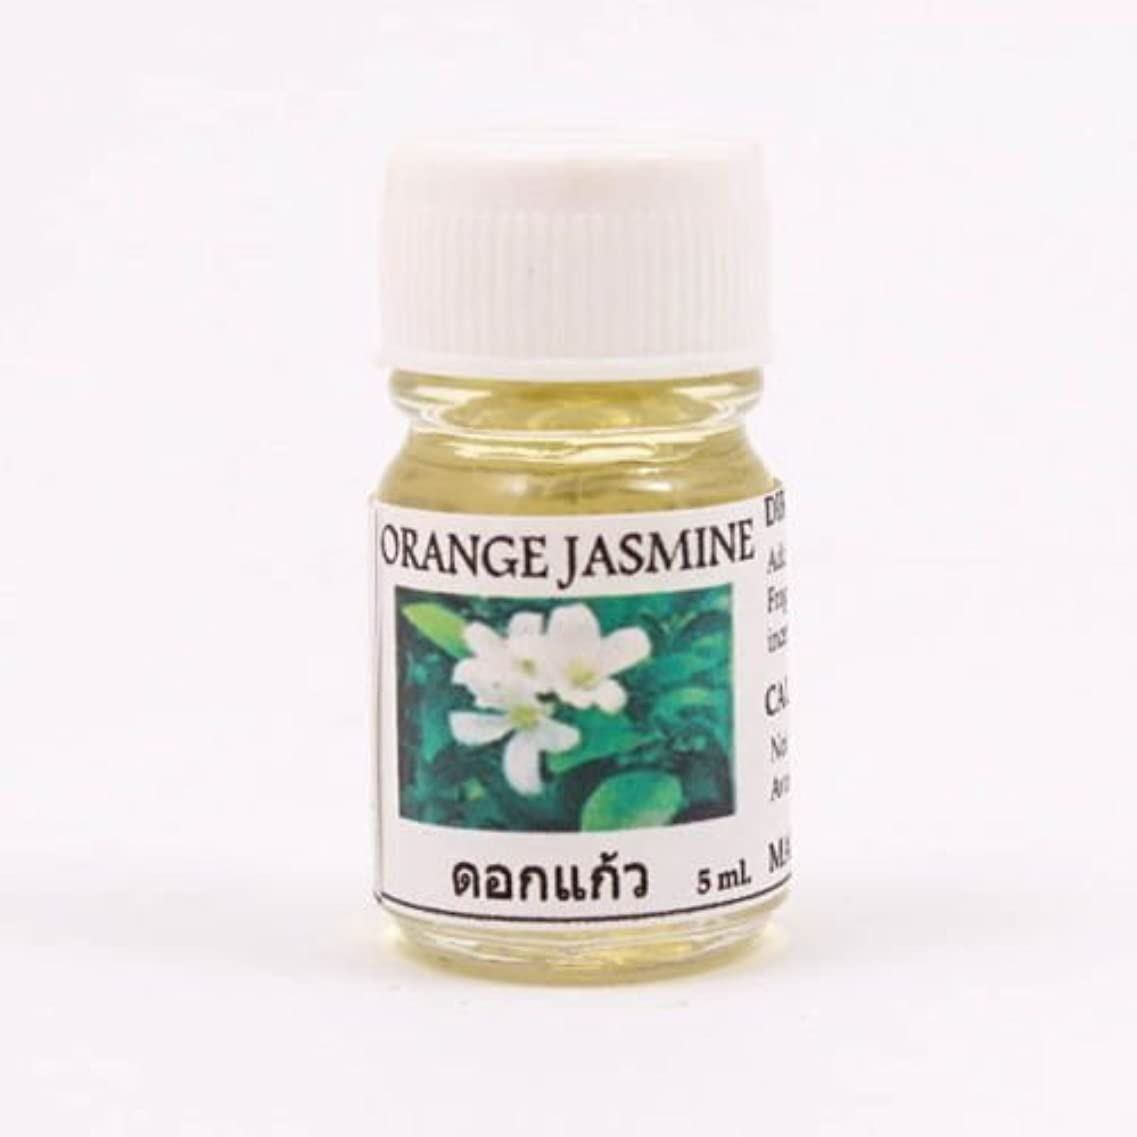 監督するマッサージ軽蔑する6X Orange Jasmine Aroma Fragrance Essential Oil 5ML. (cc) Diffuser Burner